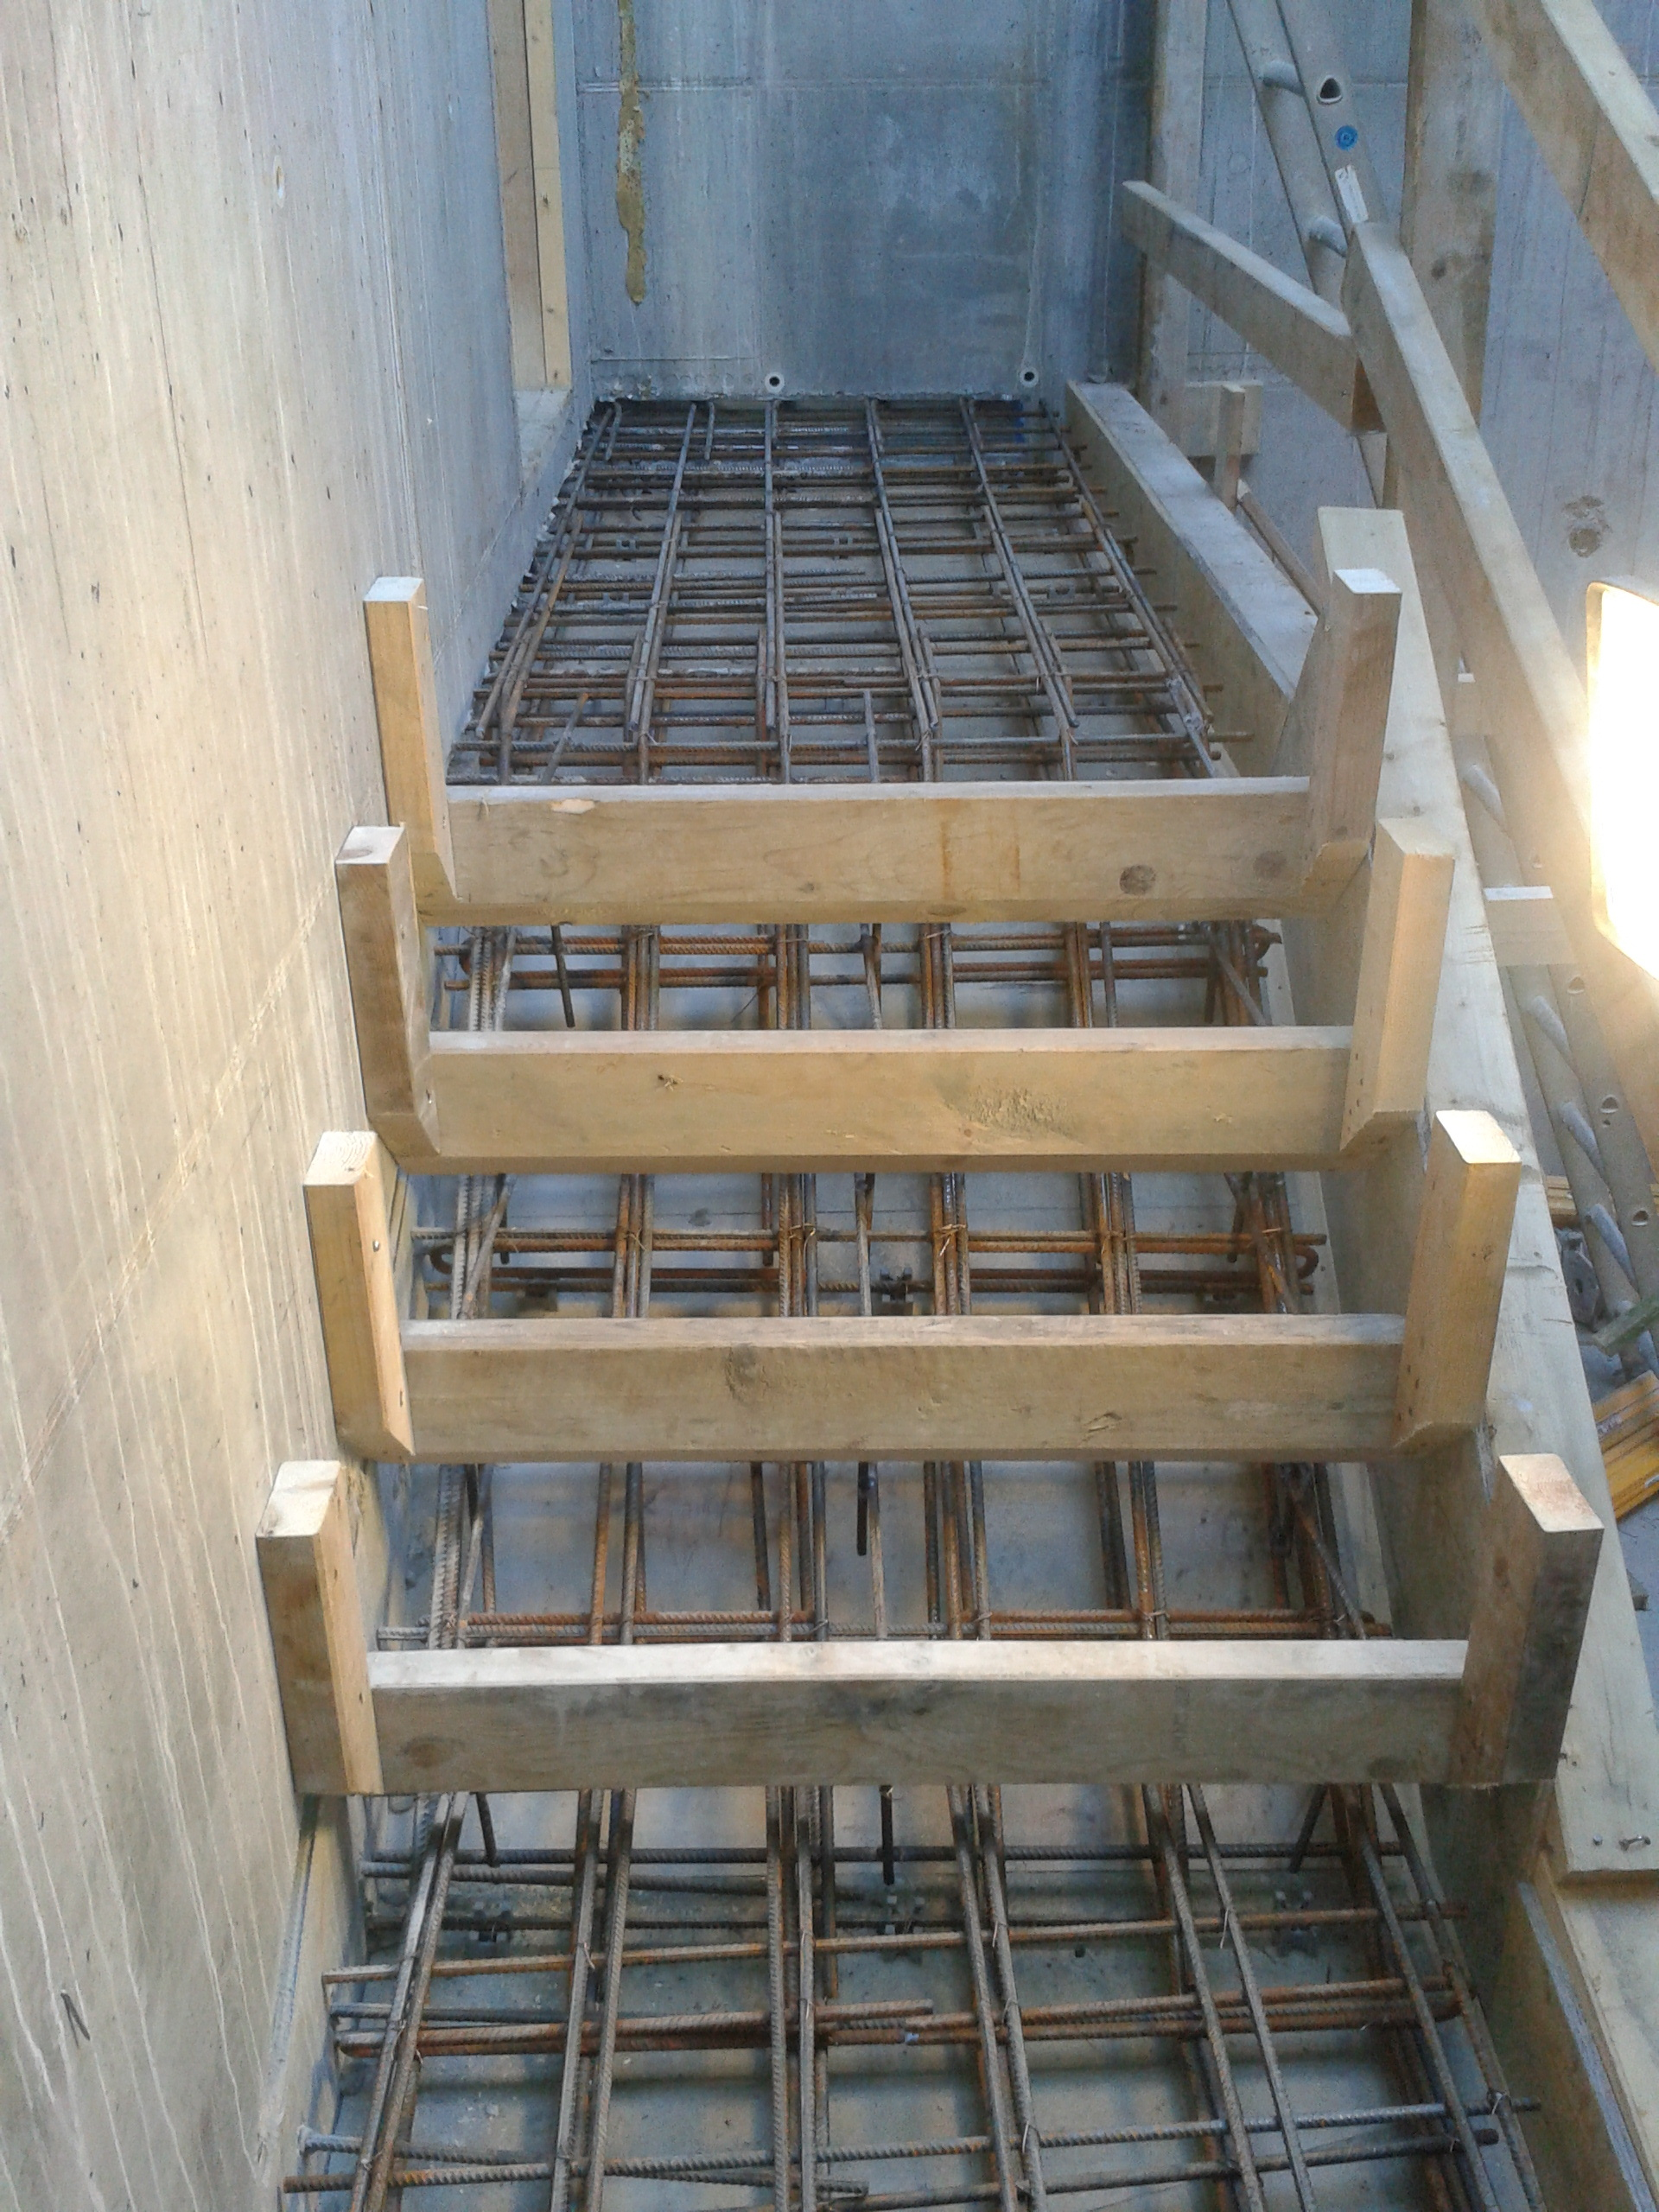 Stairs formwork - Stairs is made anywhere in many different ways and on many different underlay like dirt, gravel, or in the air like in a stairwell.